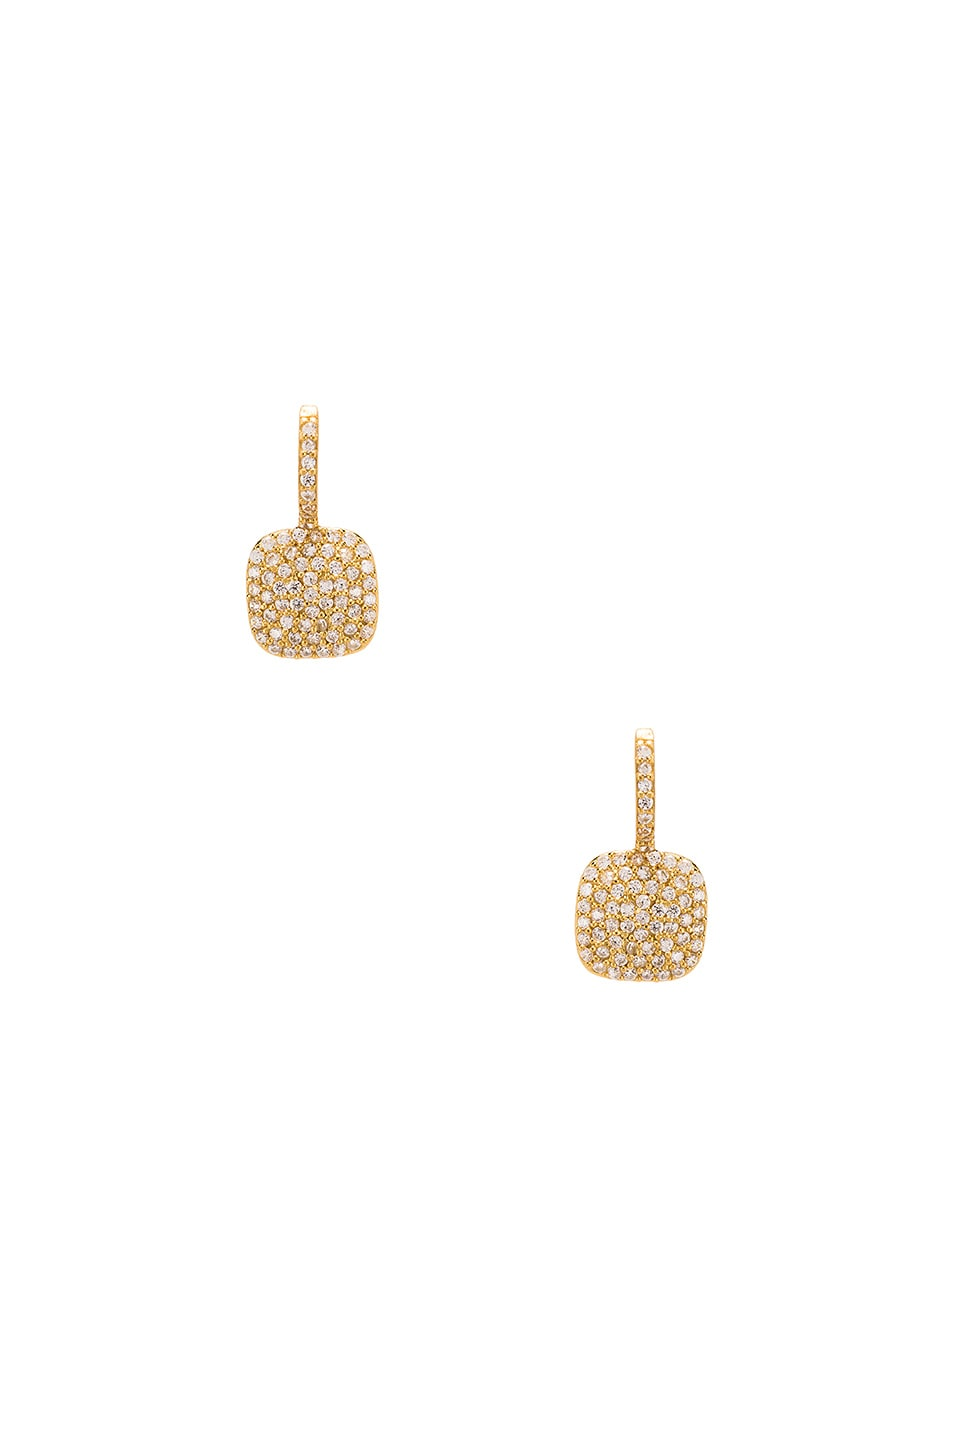 JOOLZ BY MARTHA CALVO Pave Square Huggie Earrings in Metallic Gold